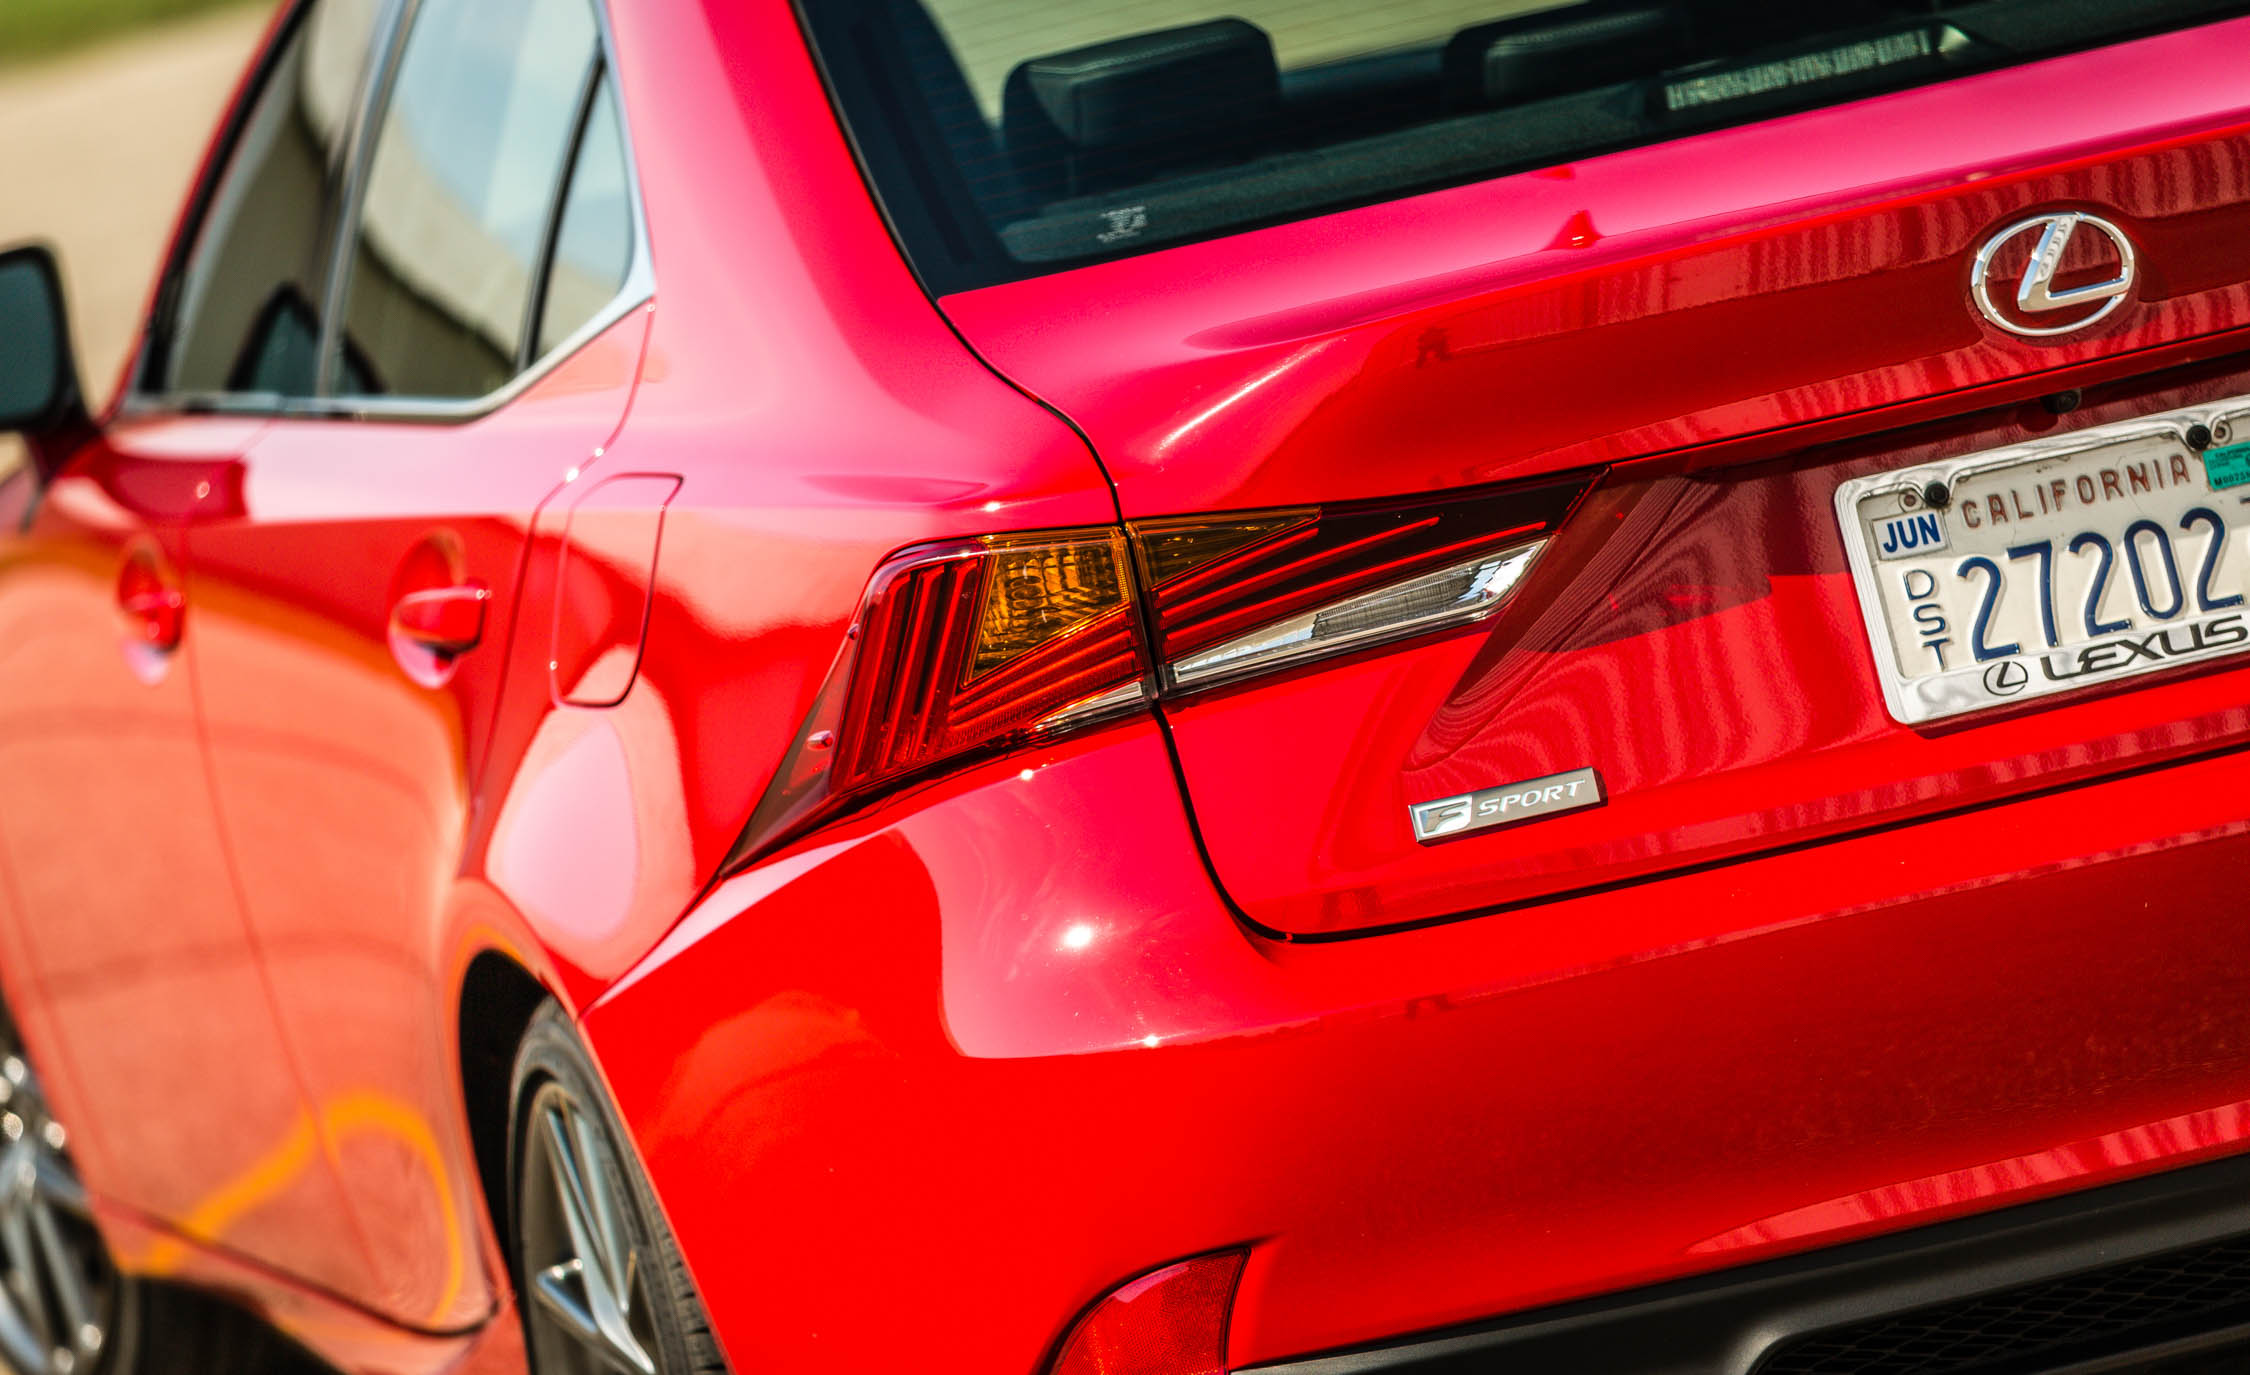 2017 Lexus IS 200t F Sport Red Exterior View Taillight (Photo 22 of 29)